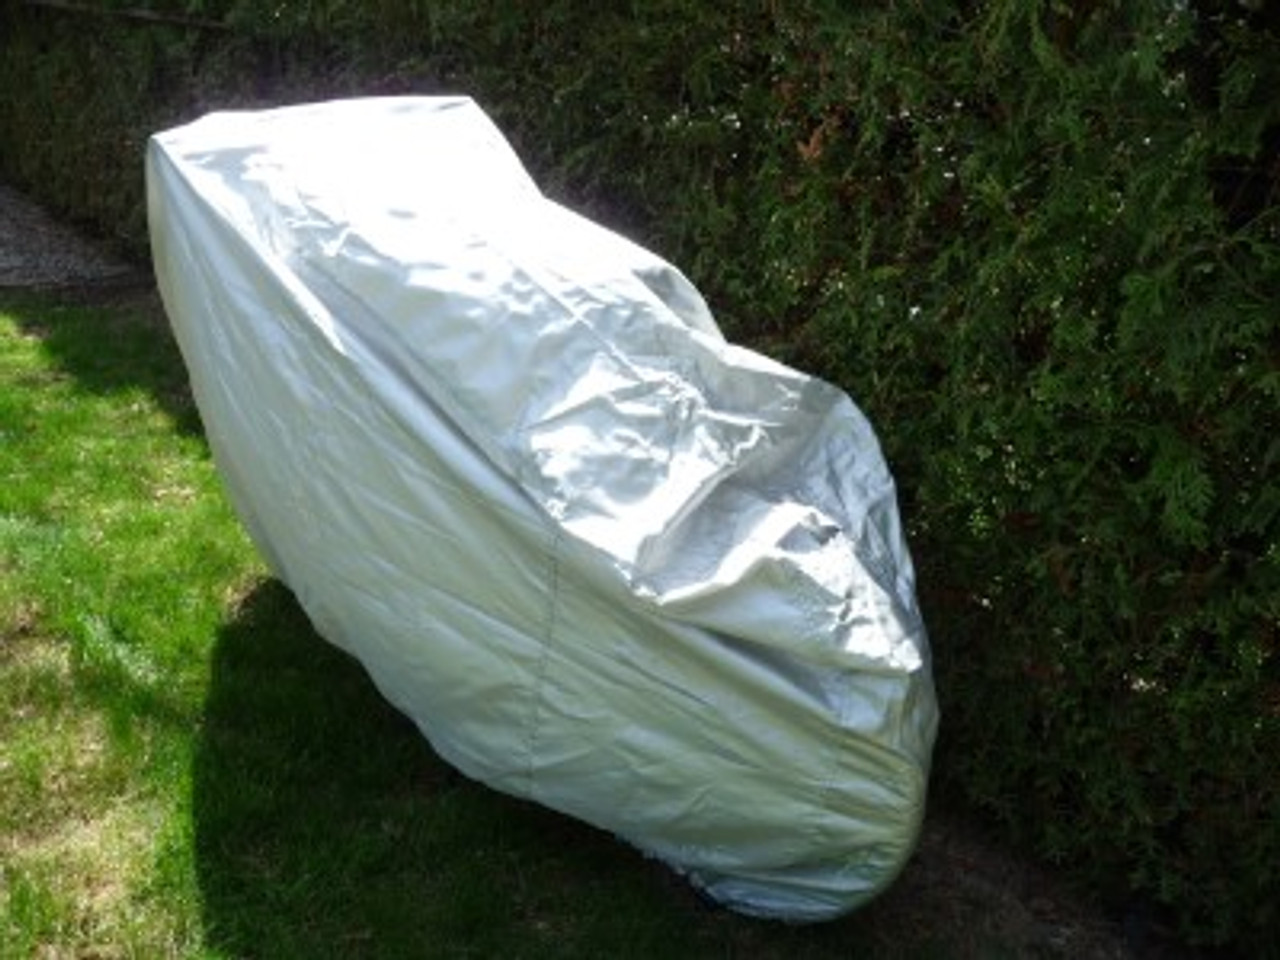 Weather Guard Bicycle cover photo back view